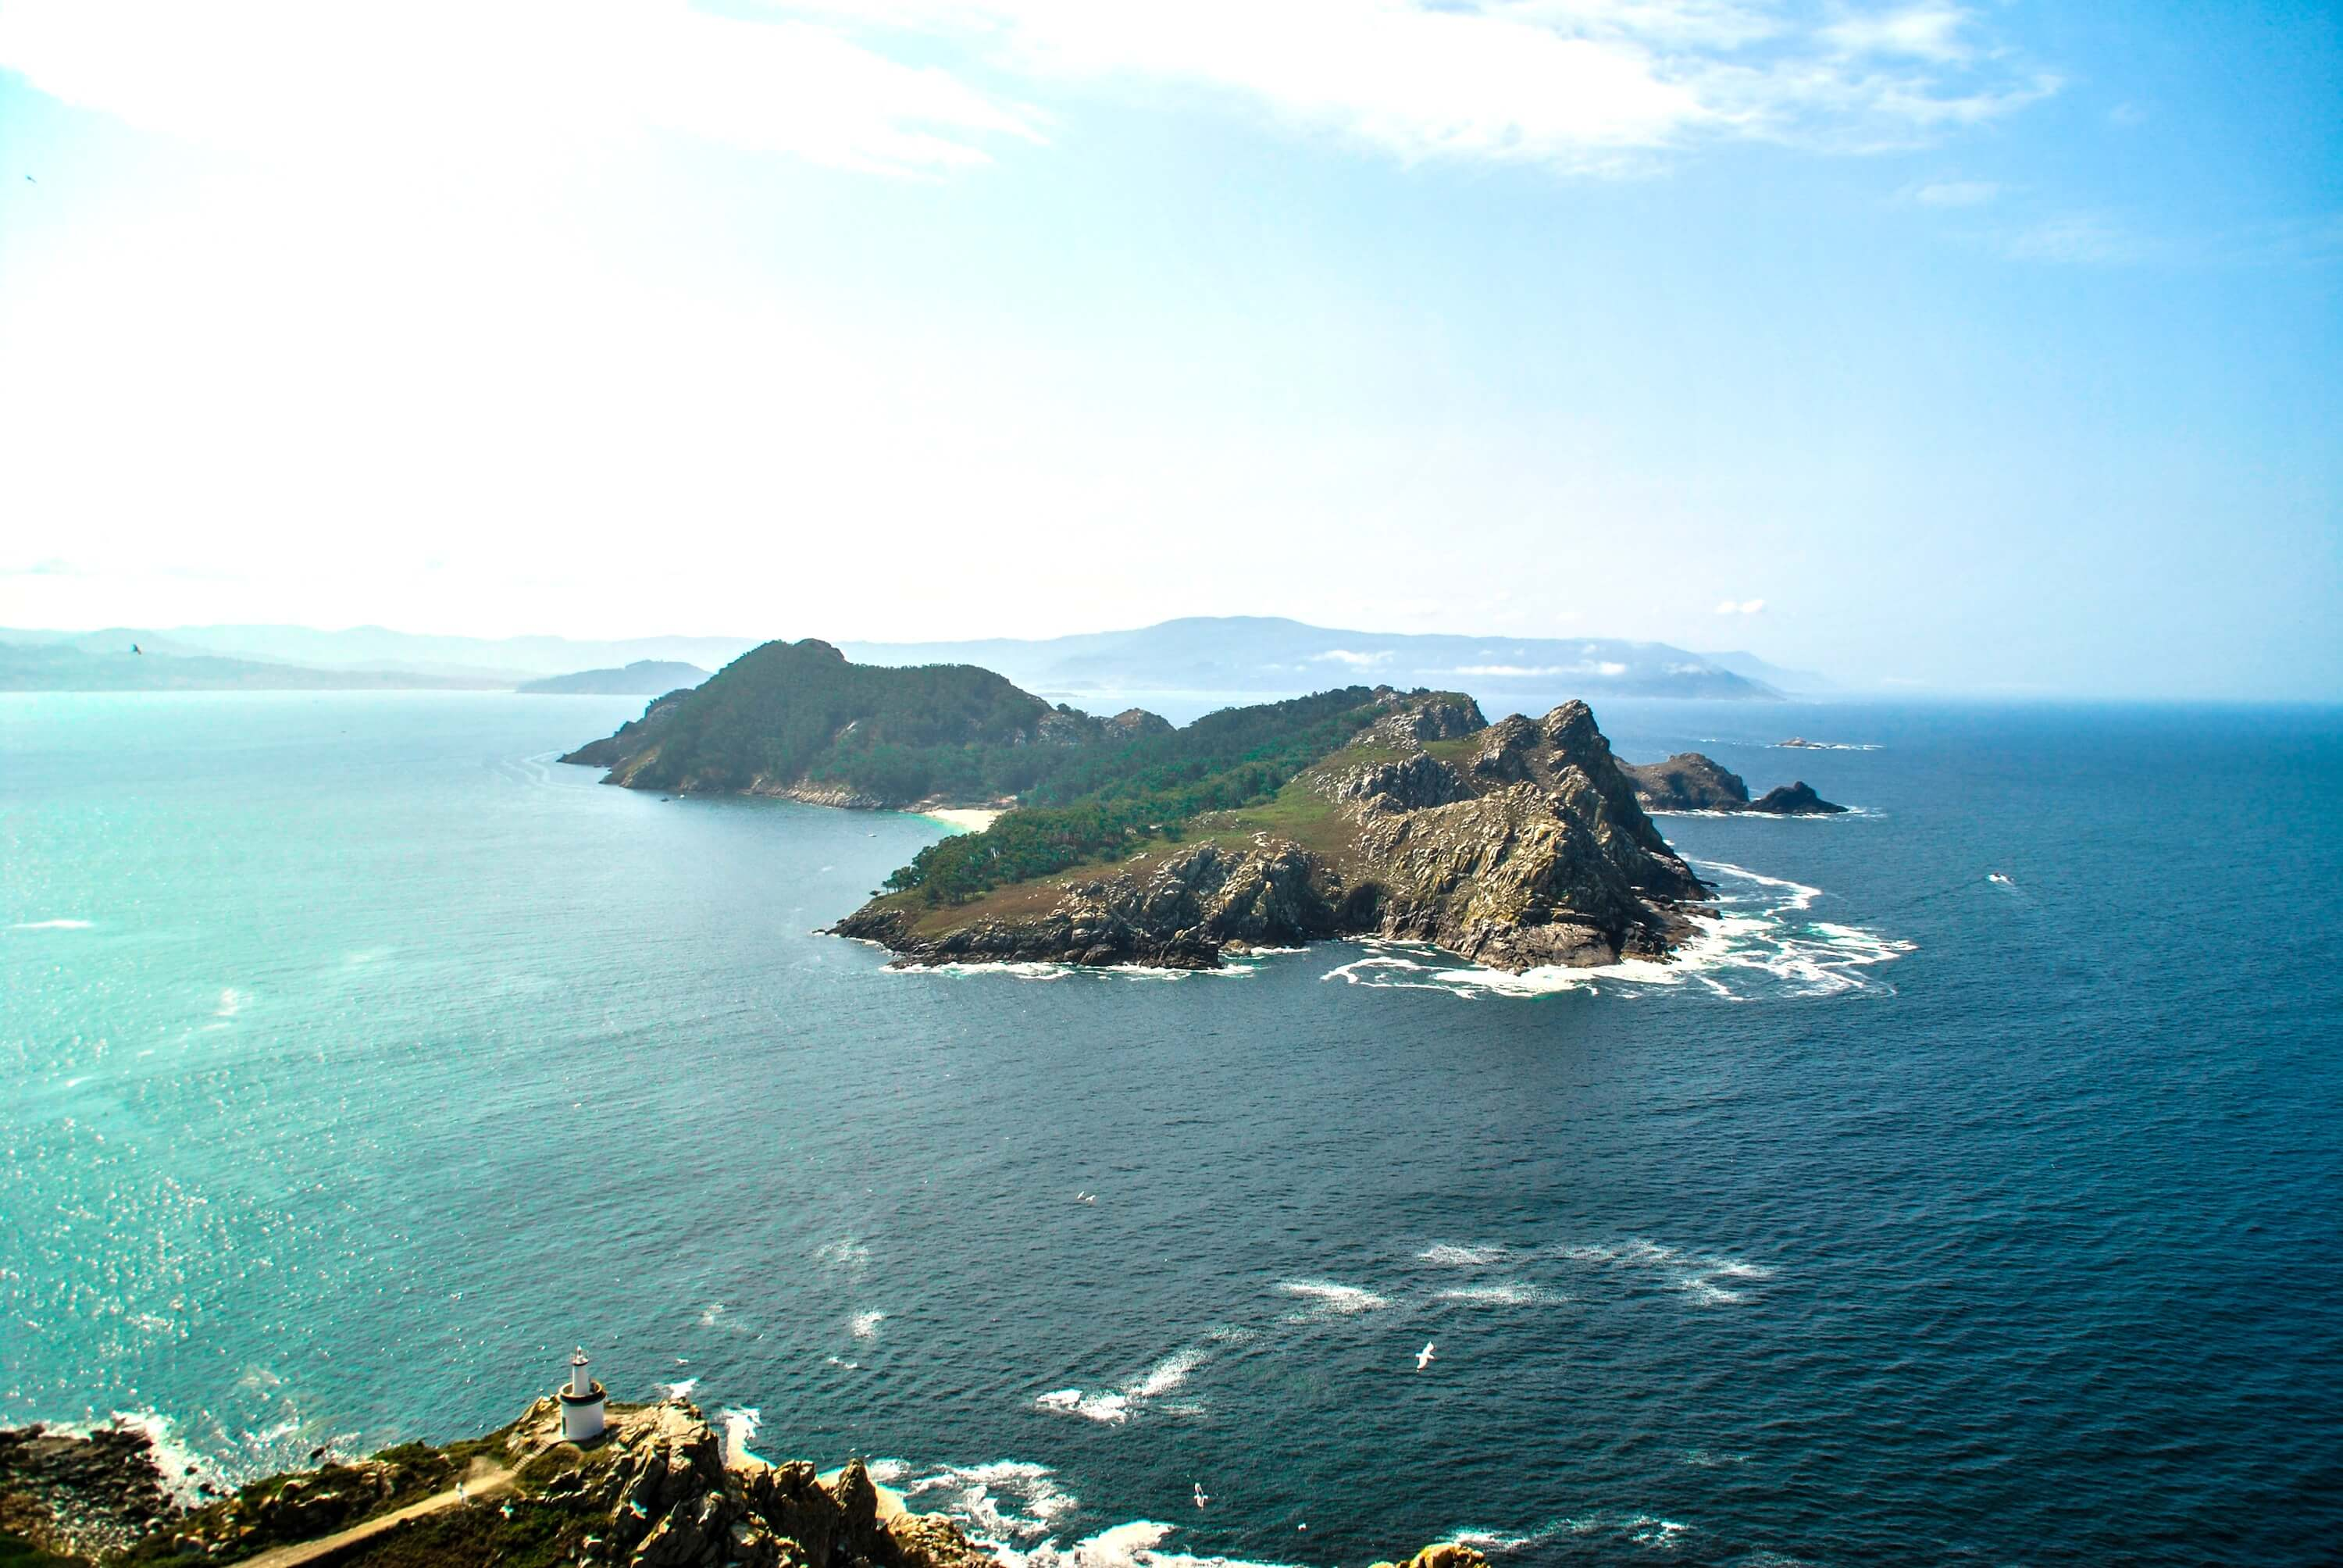 20 photos that will inspire you to visit the Cies Islands - Galicia Travel Spain Aerial View of the Cies Islands